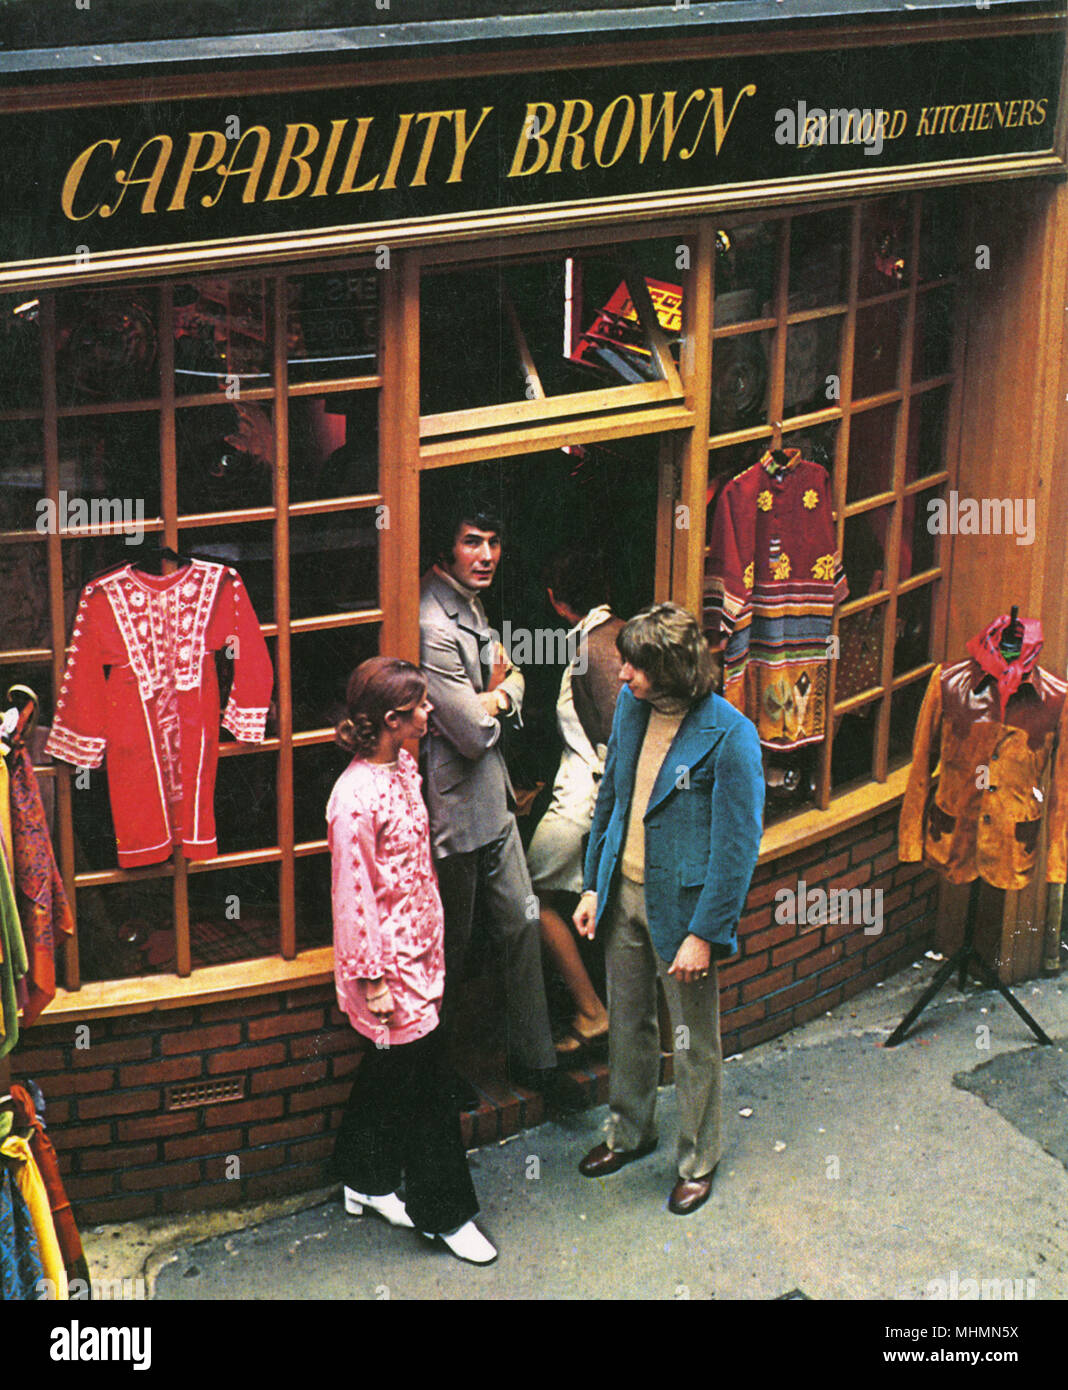 Capability Brown, a sister boutique to I Was Lord Kitchener's Valet in Carnaby Street, London during the swinging sixties.      Date: 1967 - Stock Image